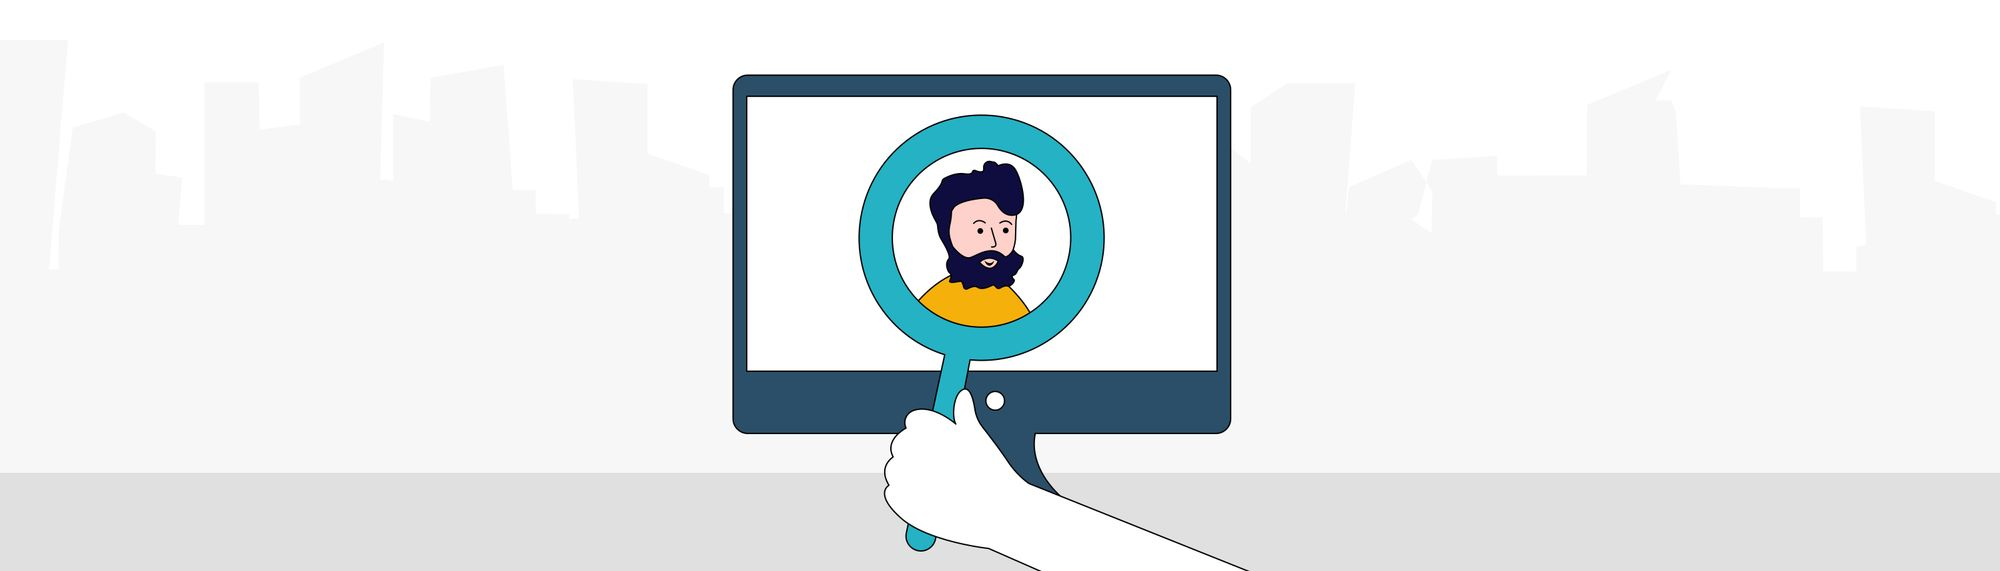 tools for candidate search